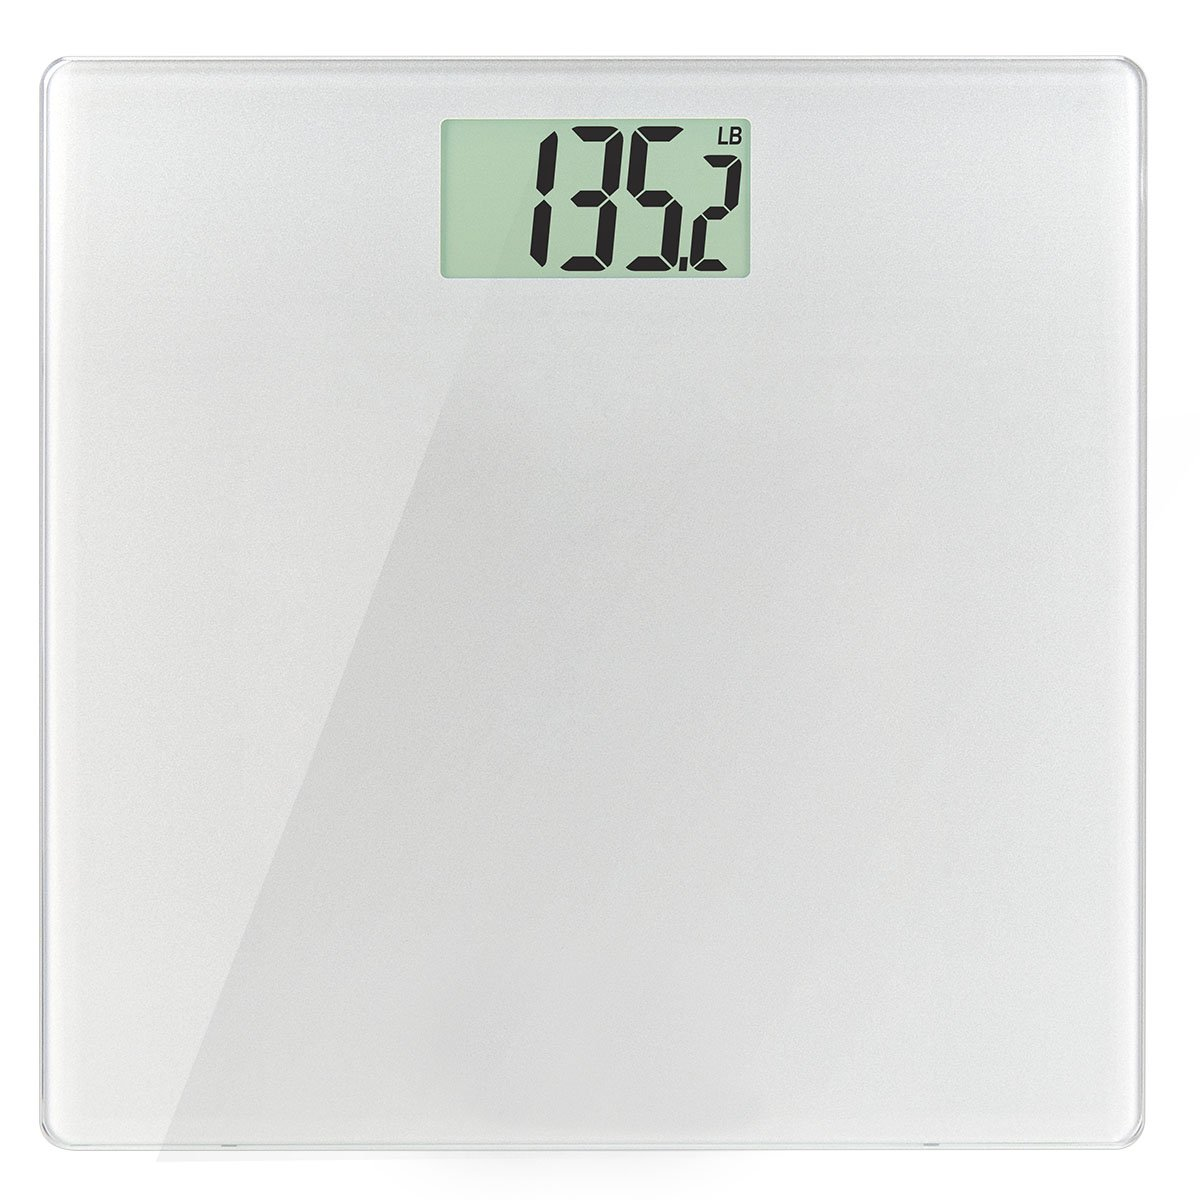 Health o meter HDM171DQ-60 Glass Weight Tracking Scale, 4.15 Pound